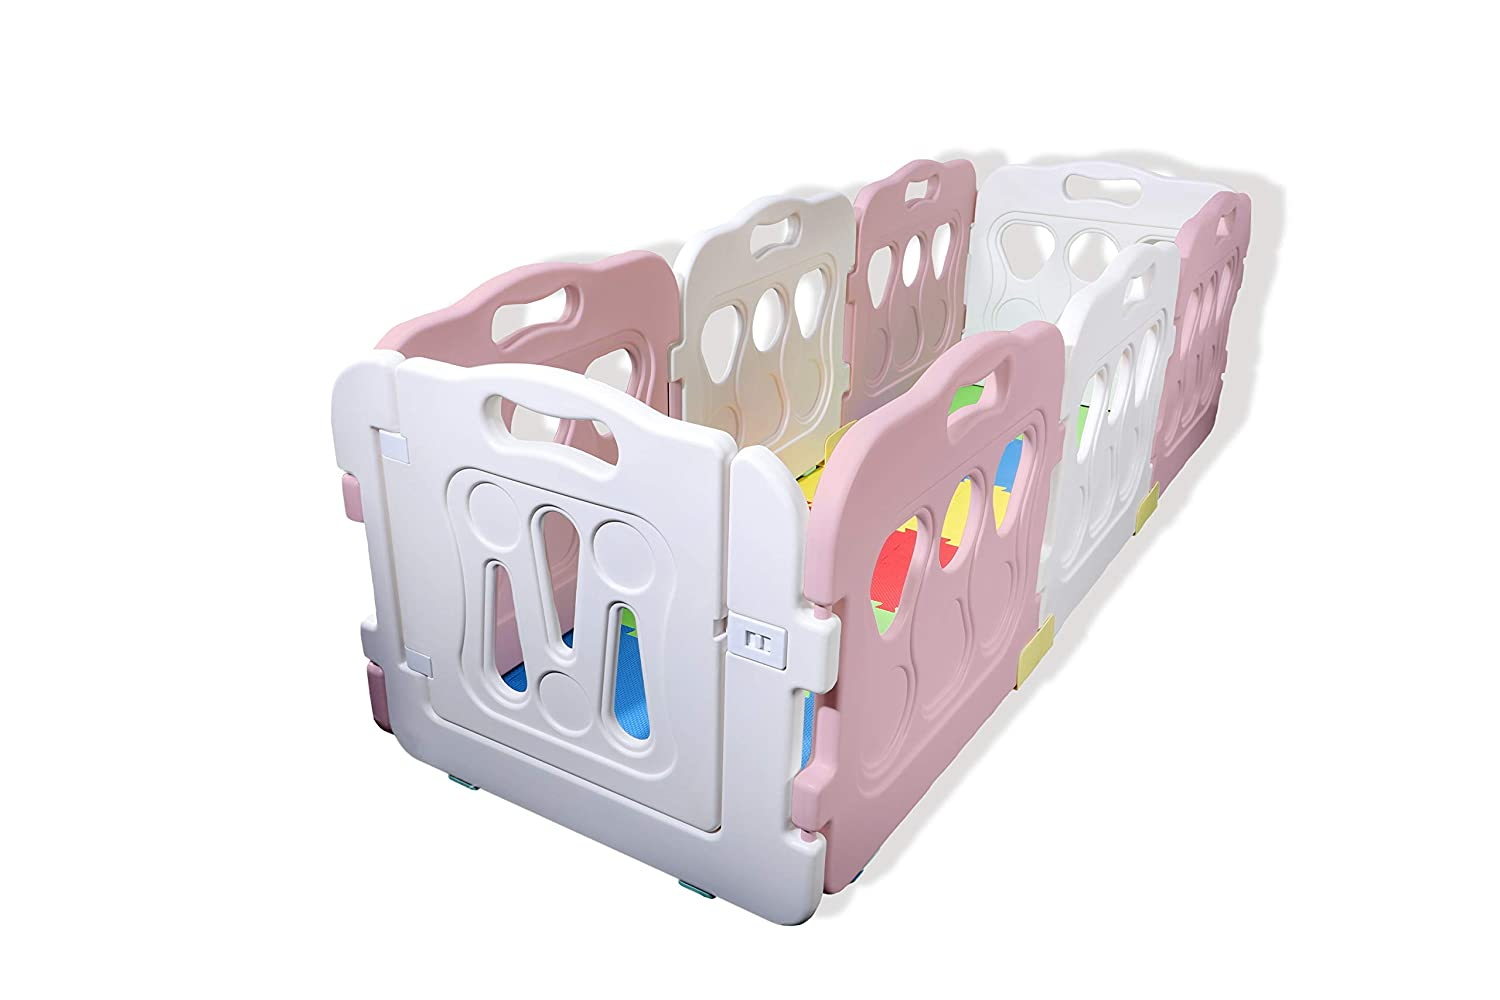 Spongy Anti-Slip Pads Stabilizers X- Large Babies Den Play Pen Panel 2020 New Model Set Gated Baby Cage +16 Soft Interlocking Floor Mats +16 Babycare Playmat Edges Baby Playpen Play Mat Mutti